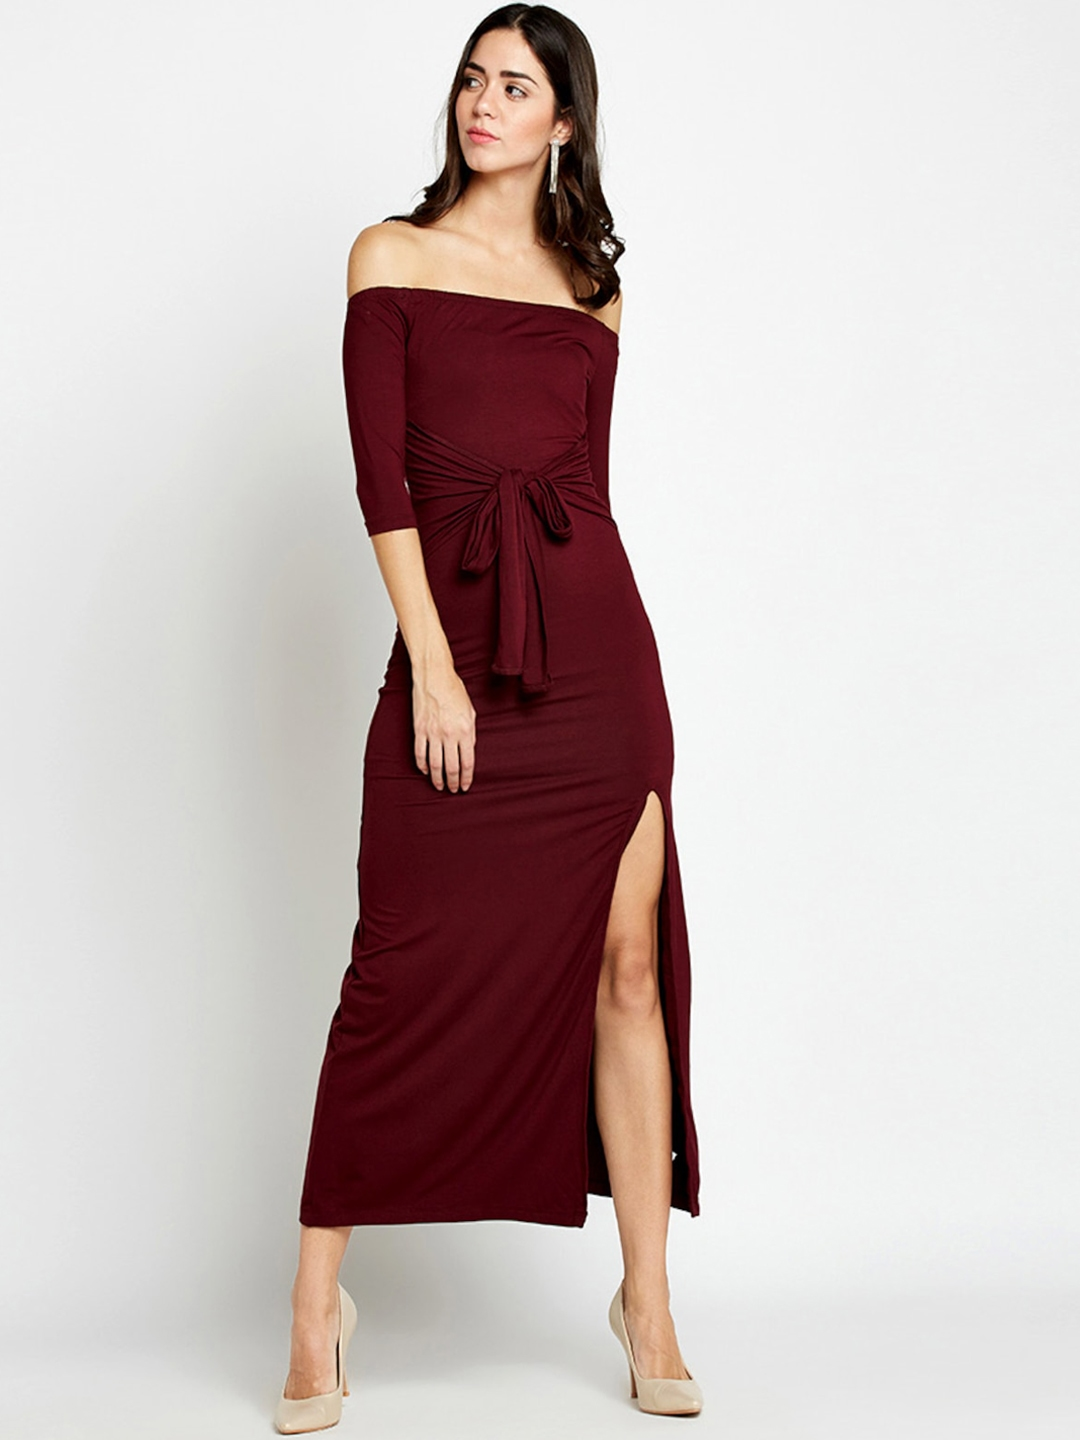 81d3eae5a73a Buy StalkBuyLove Women Maroon Solid Bodycon Off Shoulder Dress ...